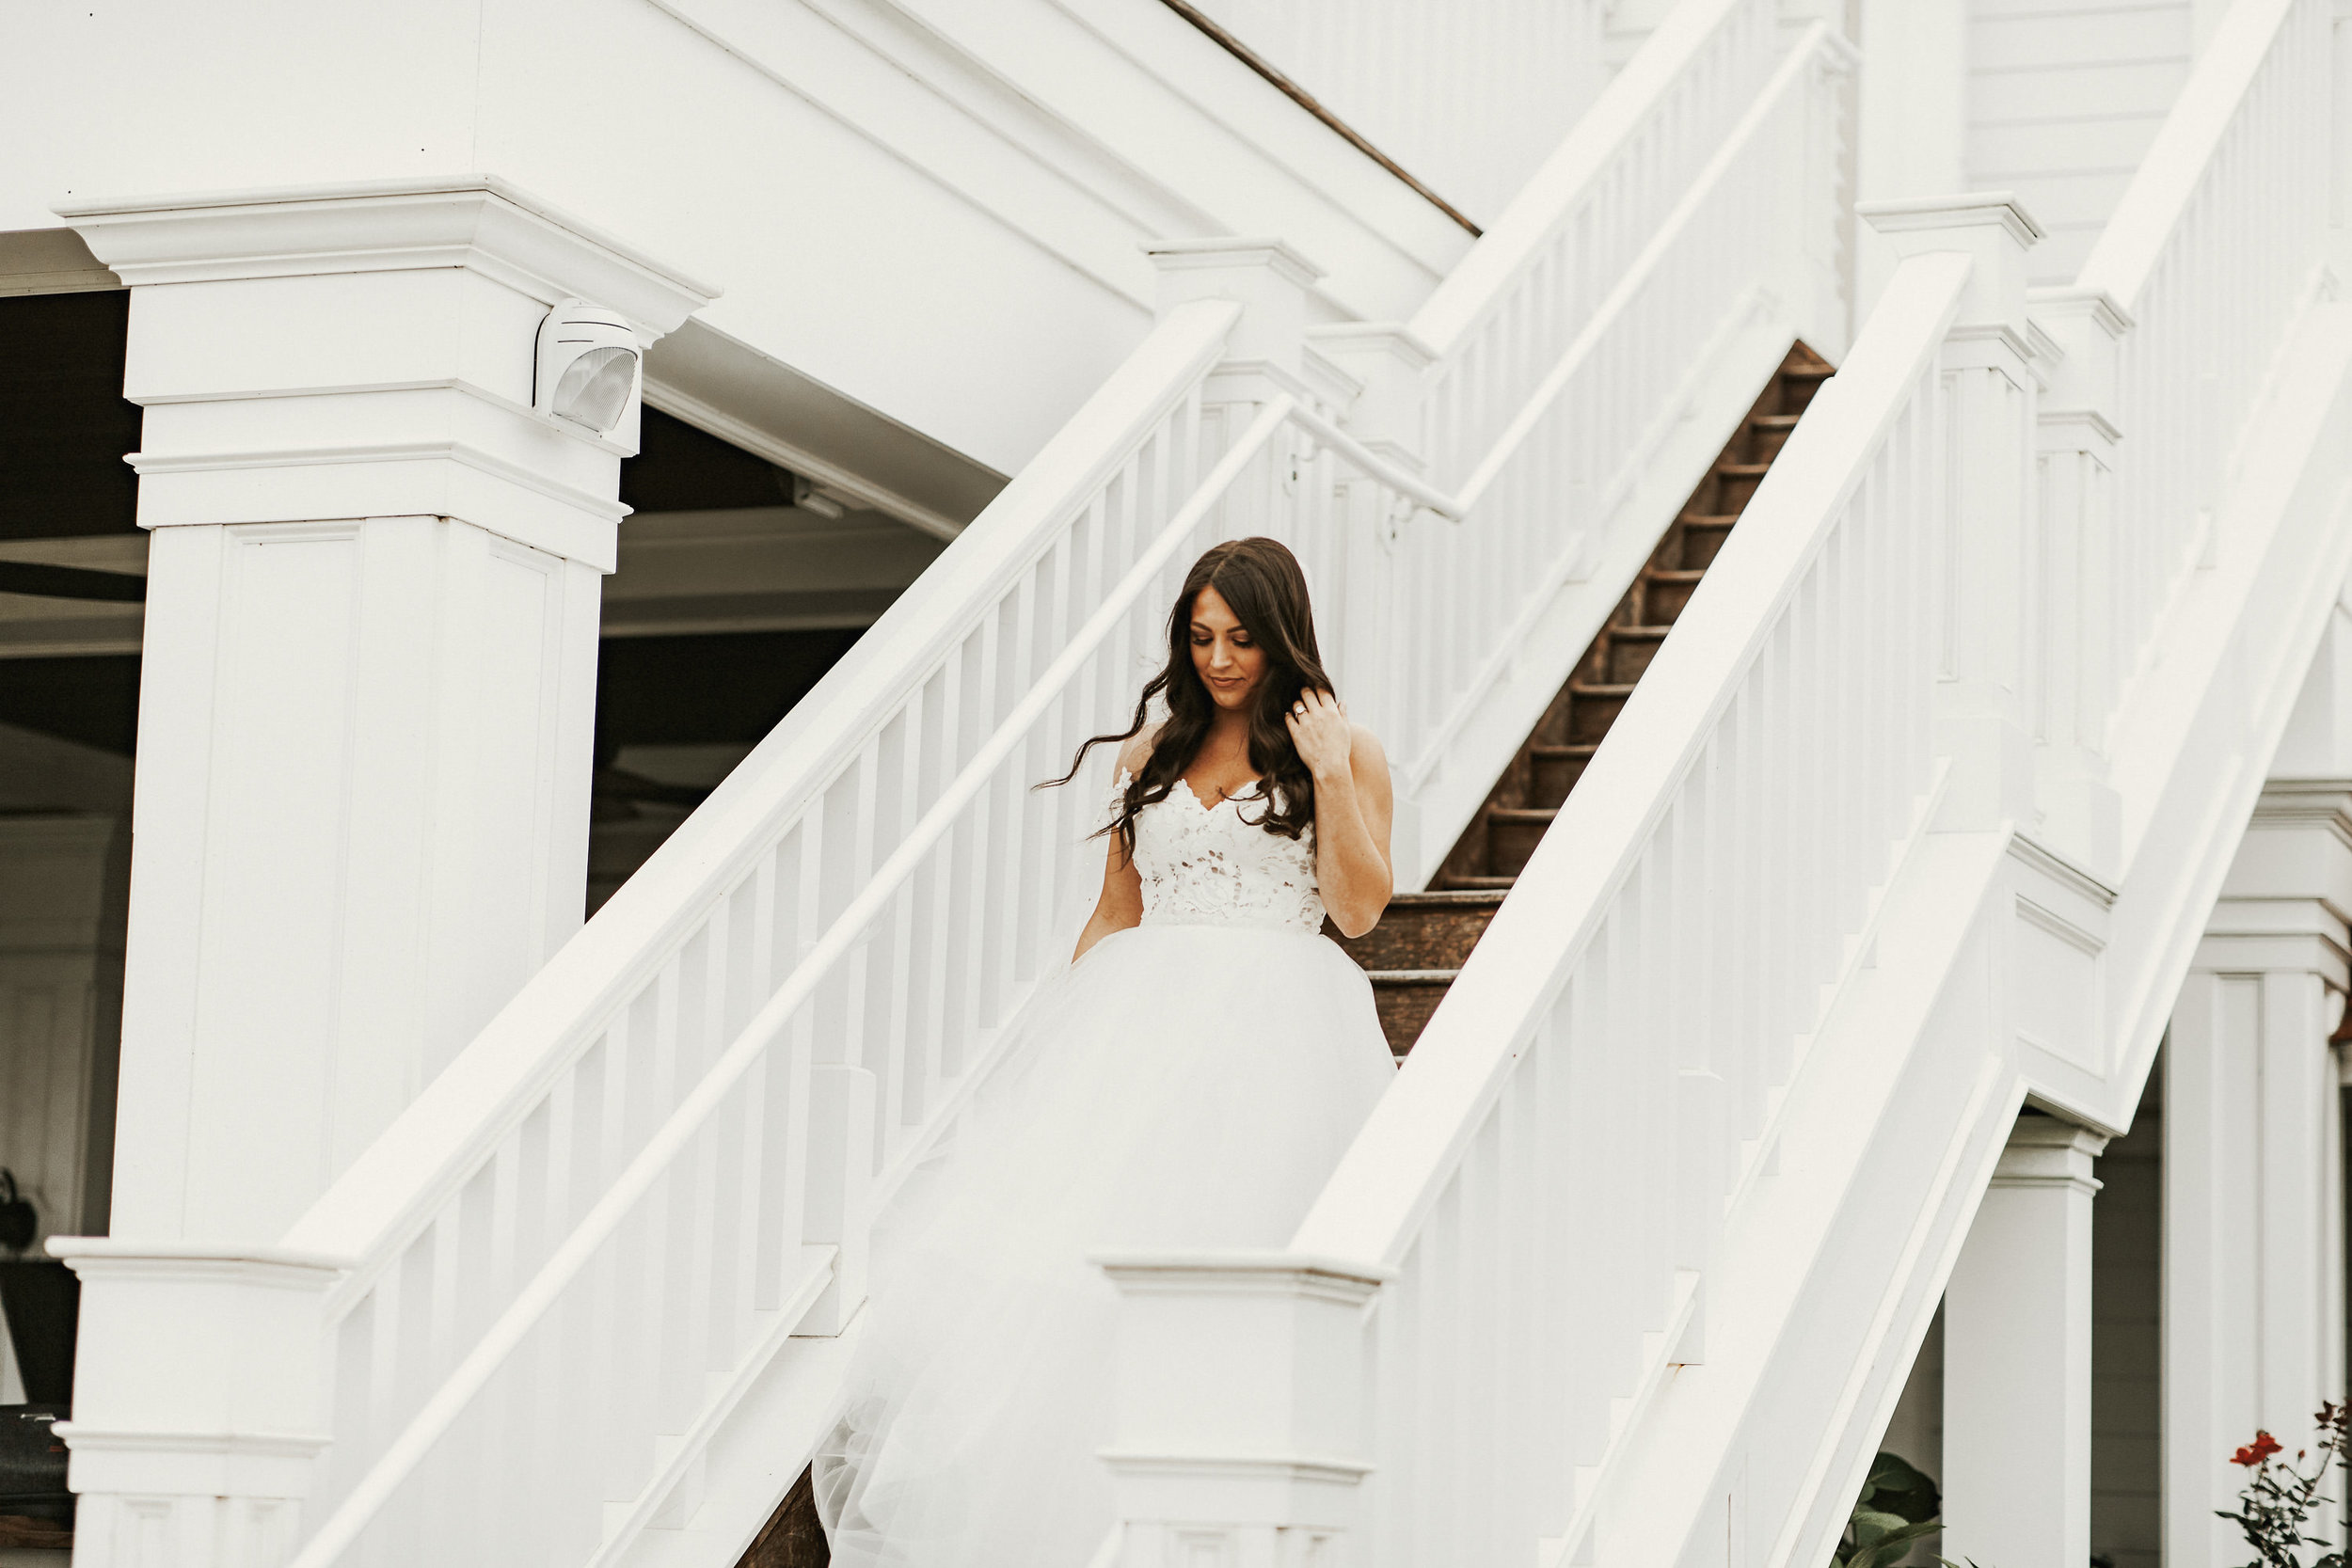 I remember walking down these steps thinking about how windy it was and how I didn't want my hair to be messed up for the photos LOL